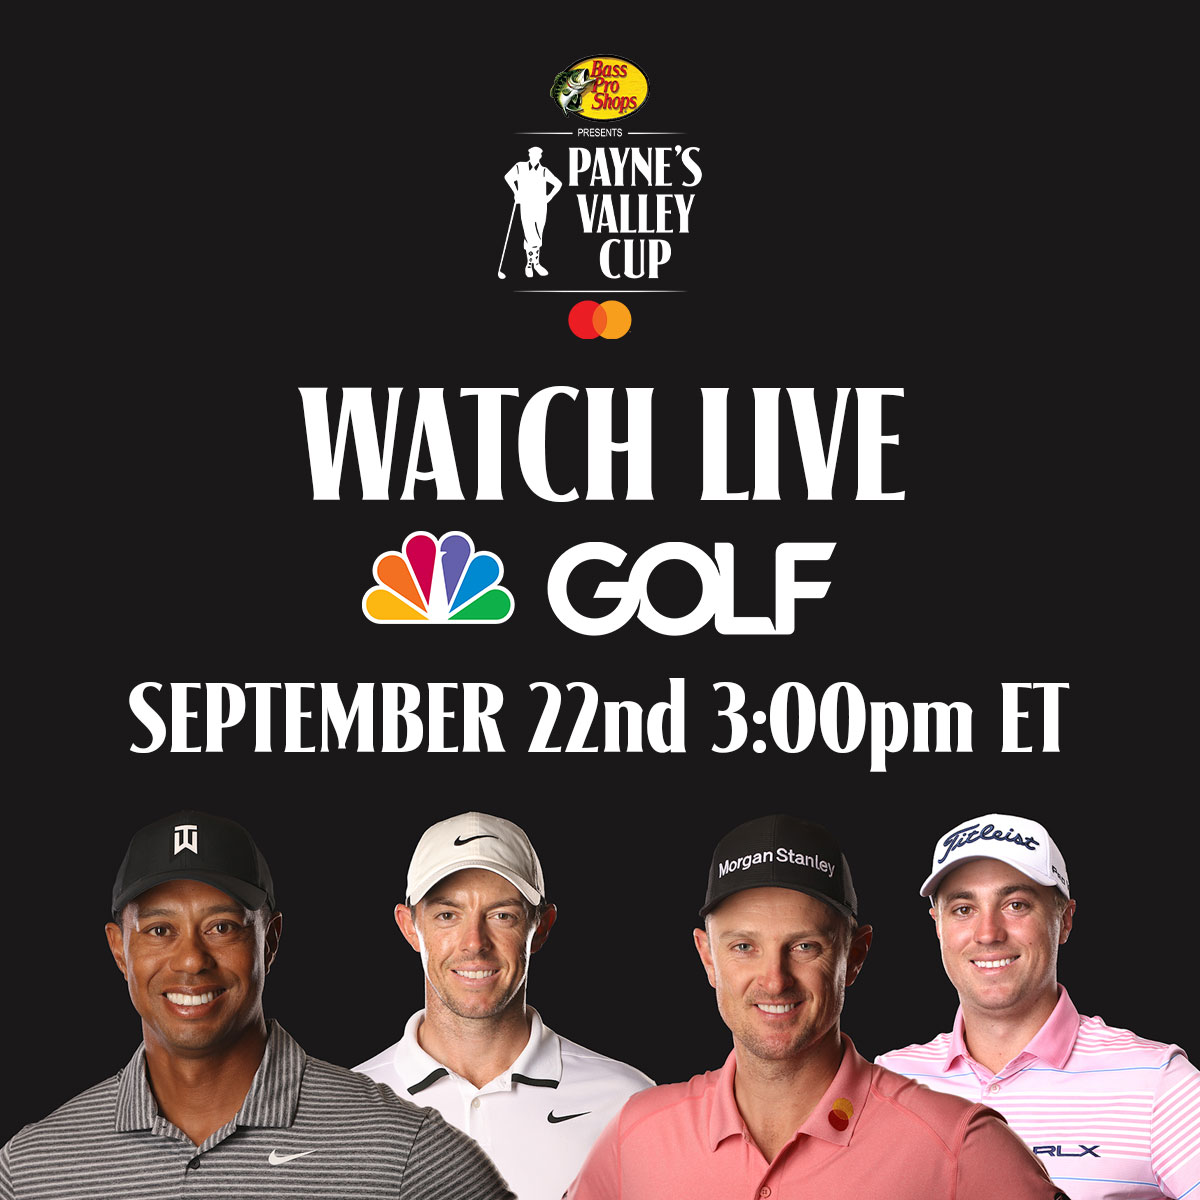 A must-see event! Join us as we watch Team America versus Team Europe at the #PaynesValleyCup at @GolfBigCedar on Sept. 22nd from 3pm - 7pm ET on @GolfChannel. https://t.co/iaP9Ux23wk